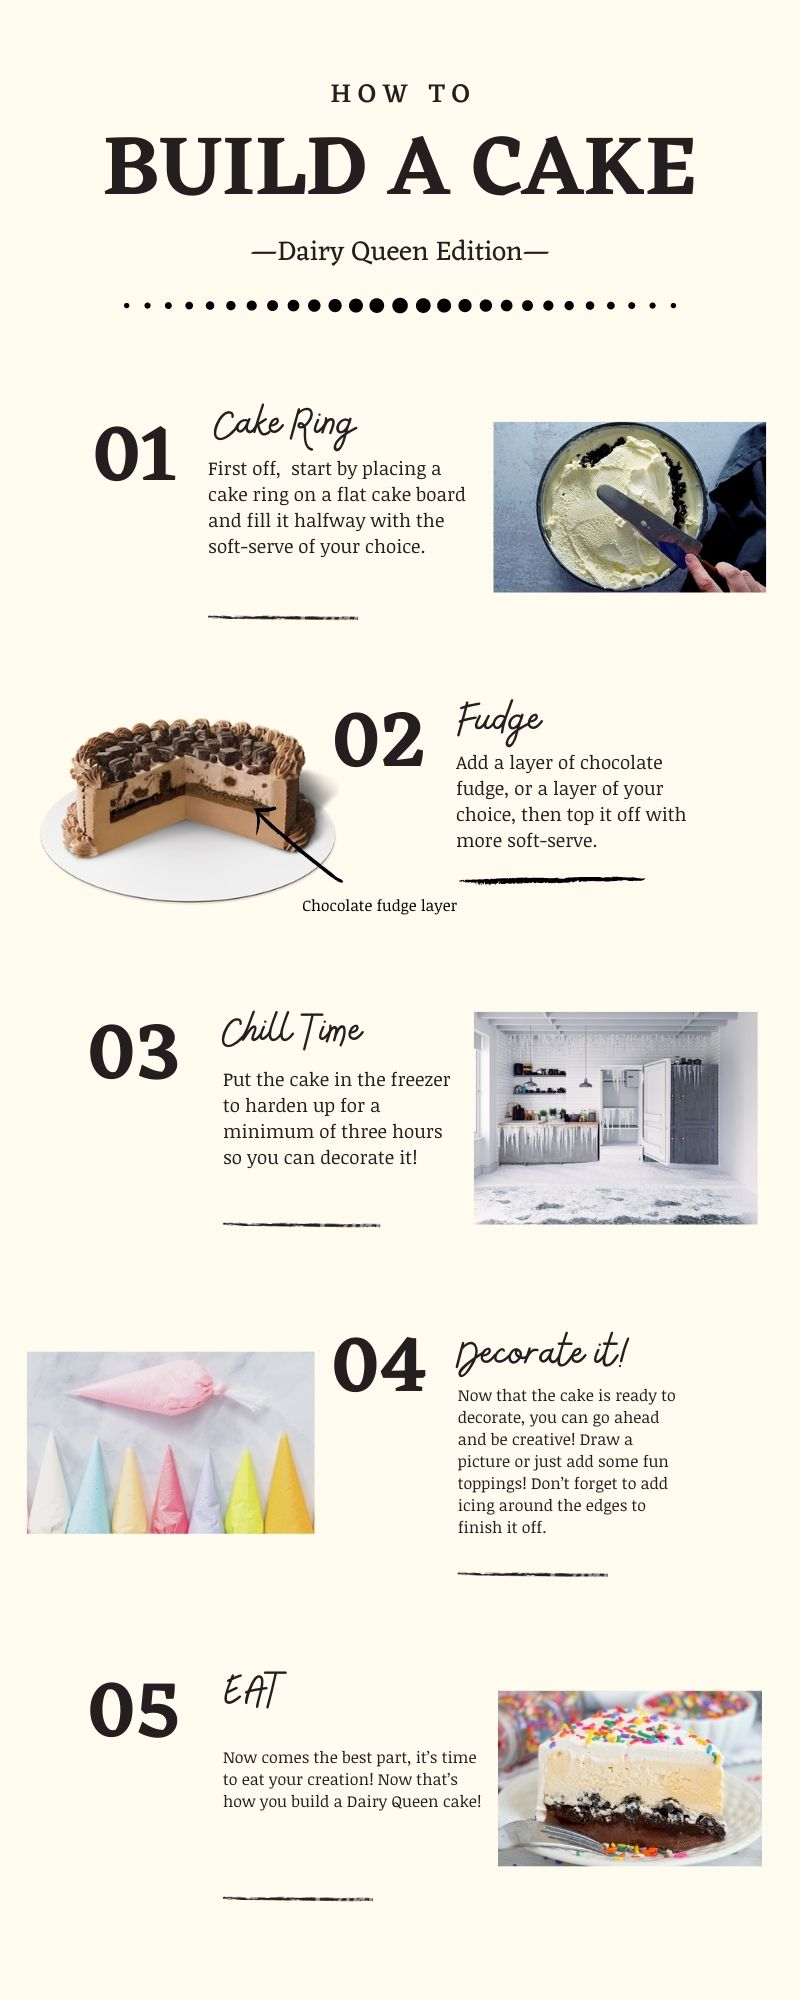 An infographic on how to build an ice cream cake.